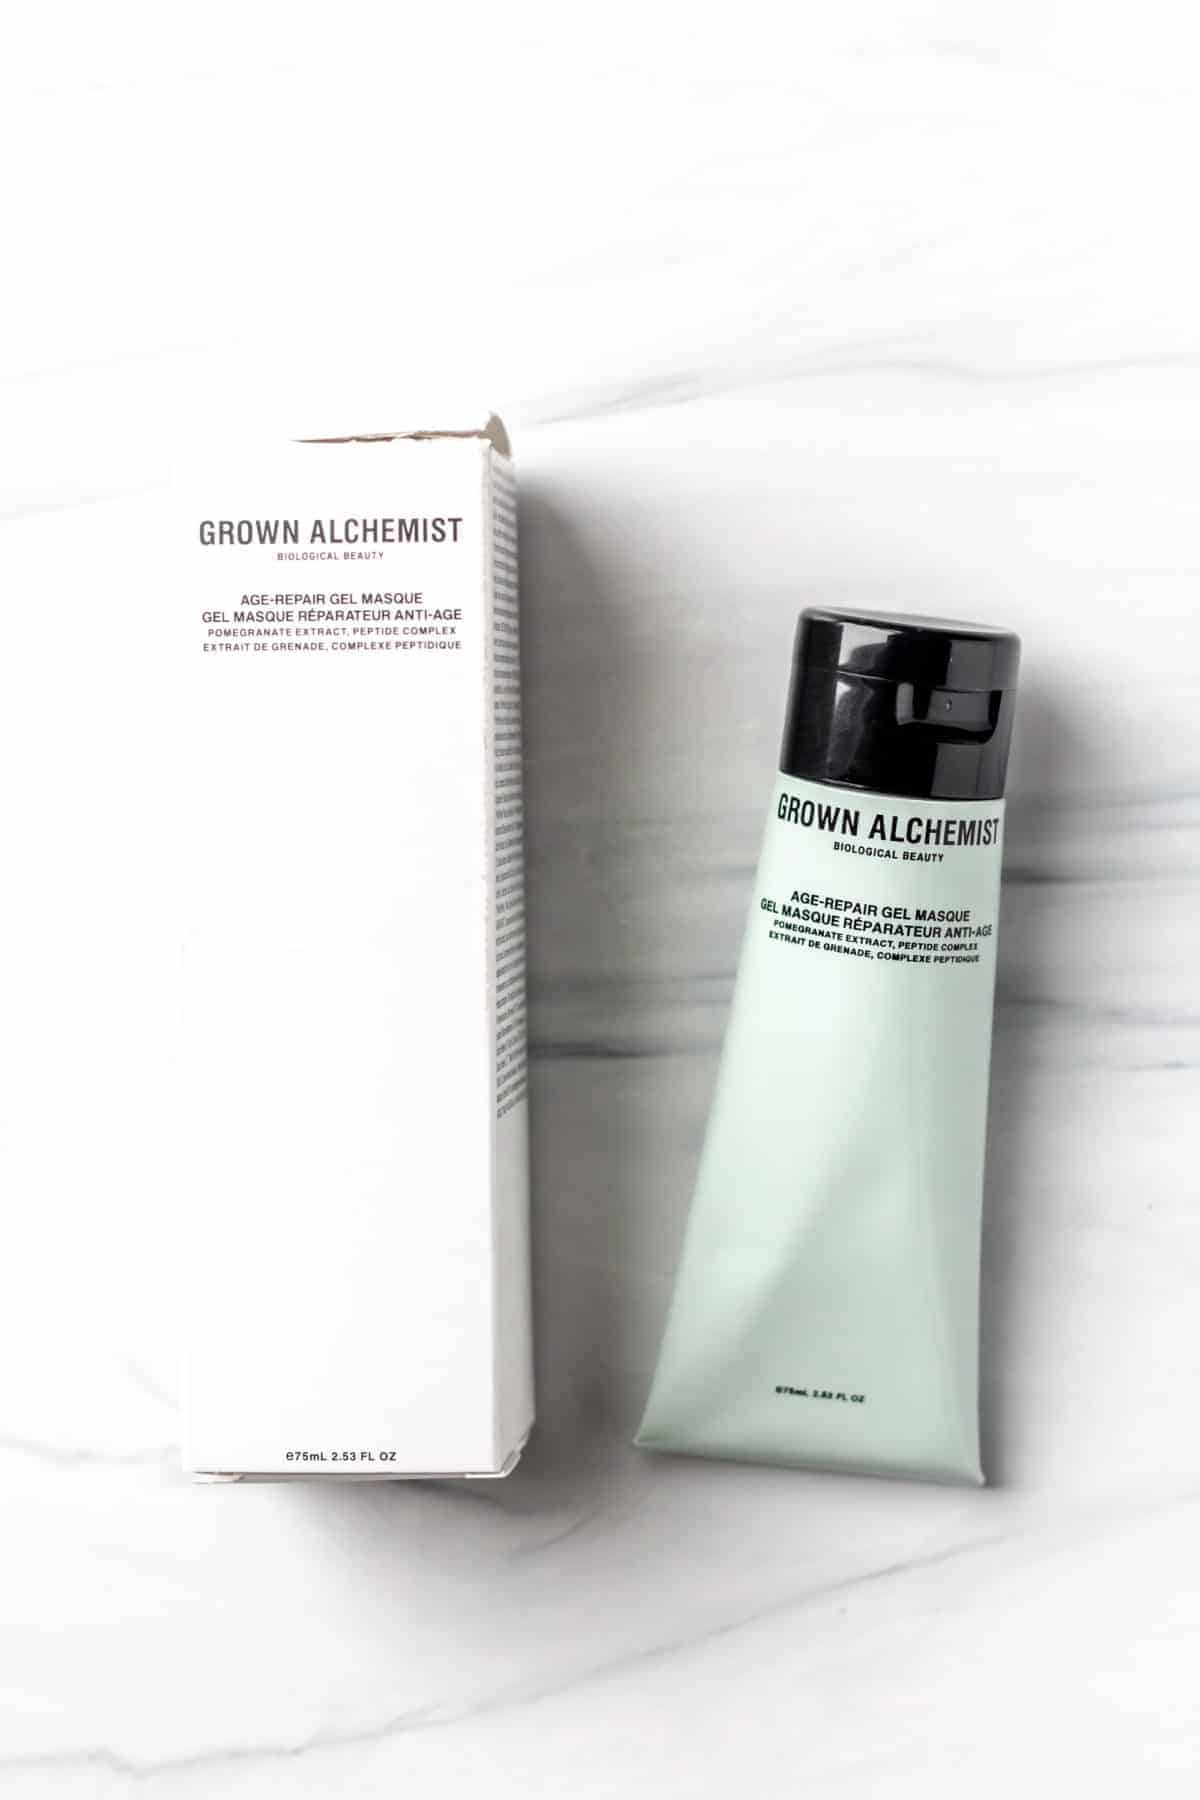 Grown Alchemist Age Repair Gel Masque tube and box on a white background